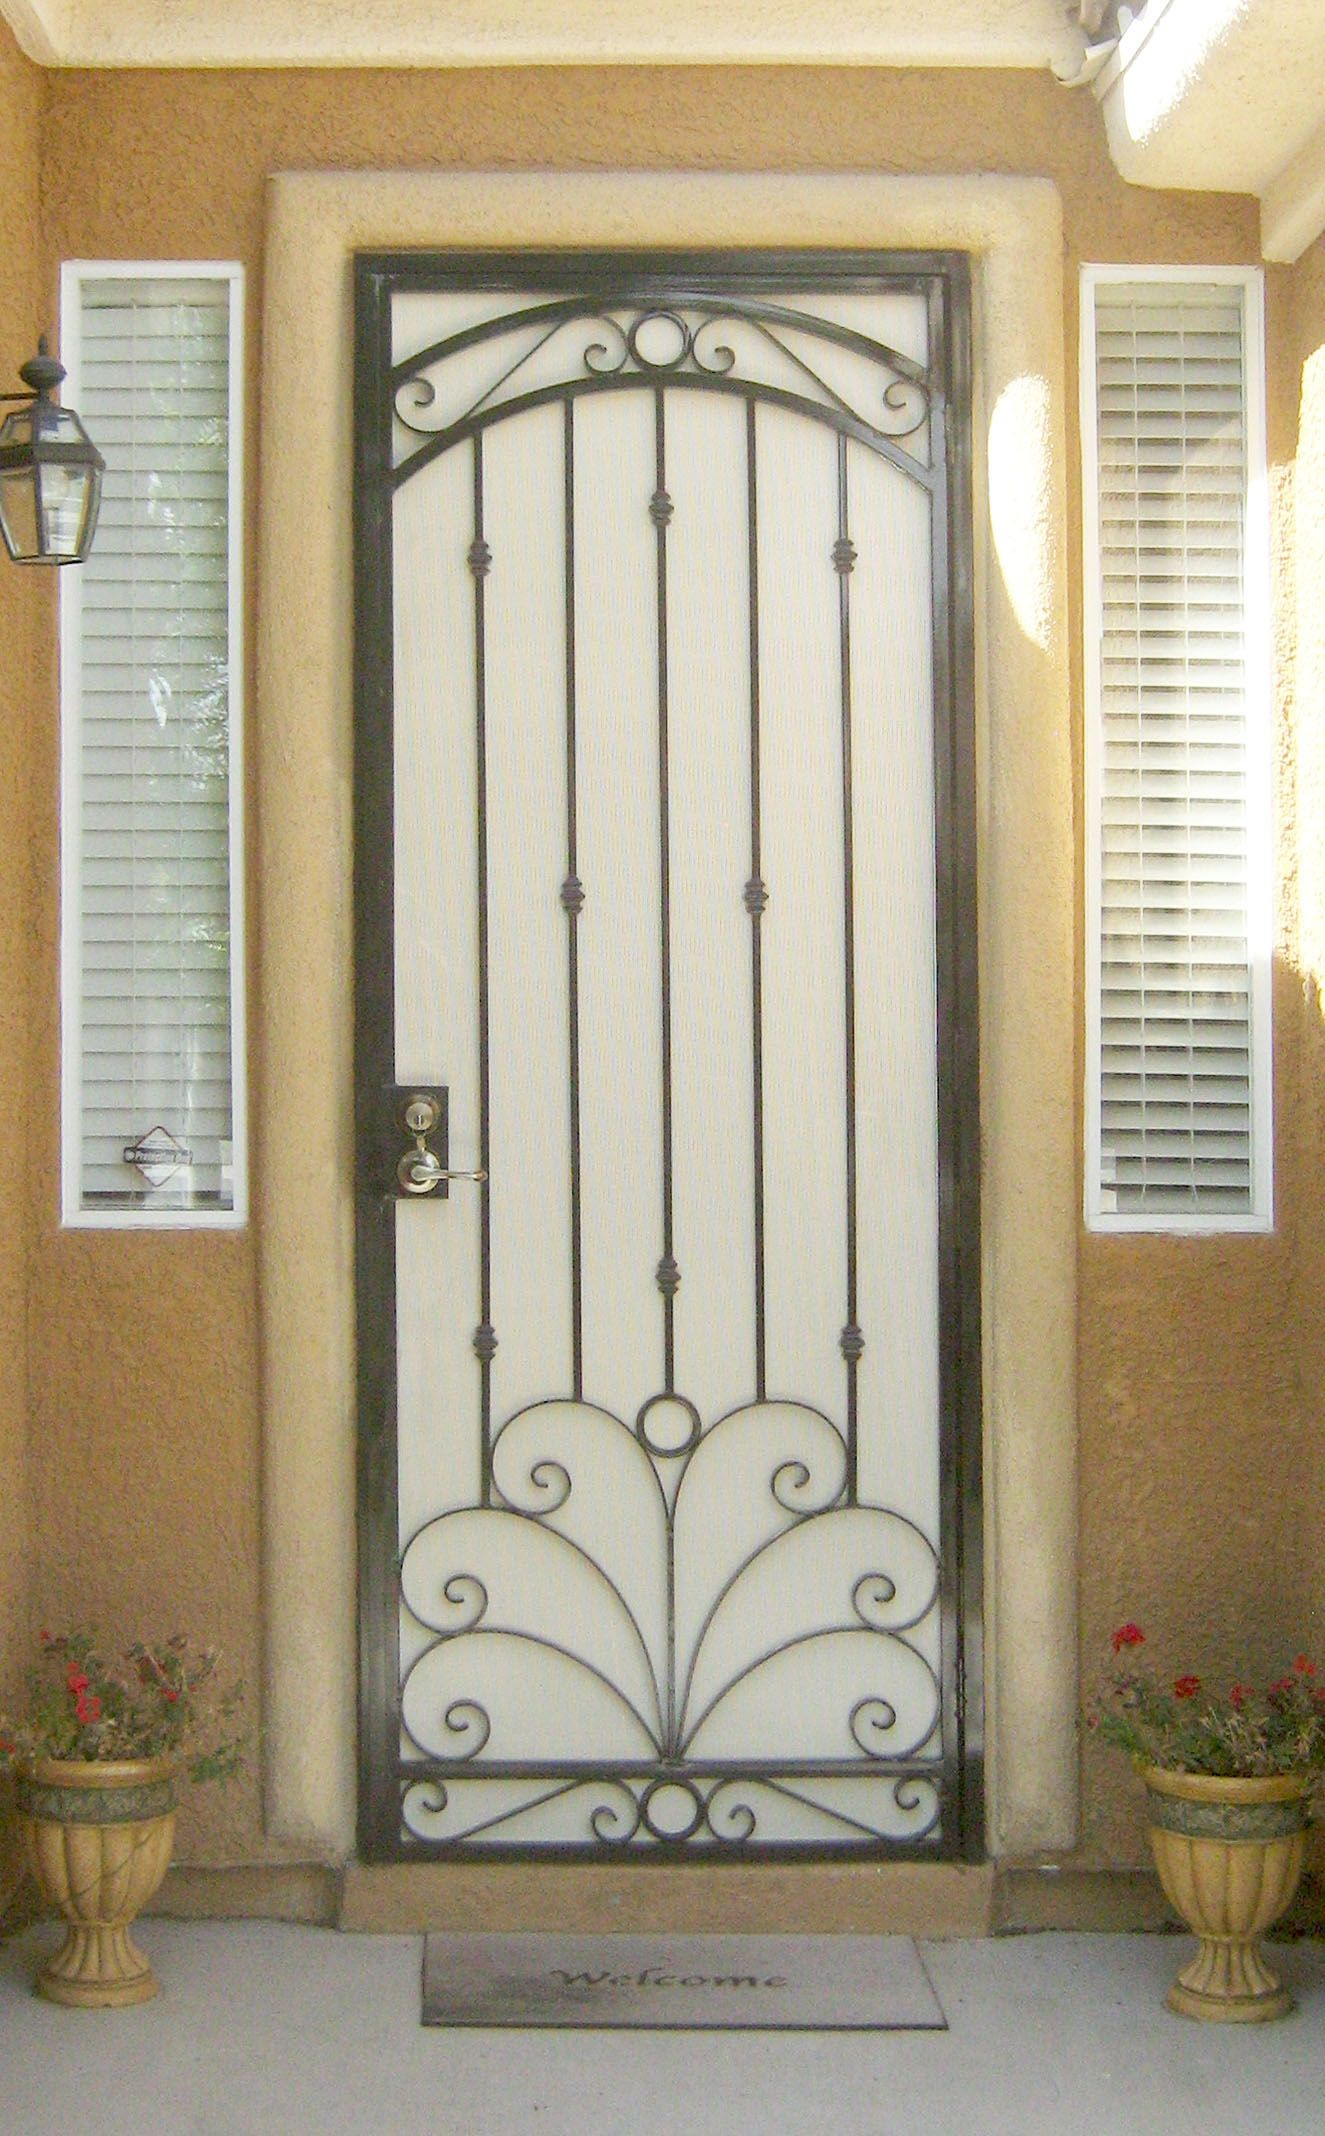 Decorative Wrought Iron Security Screen Doors Steel